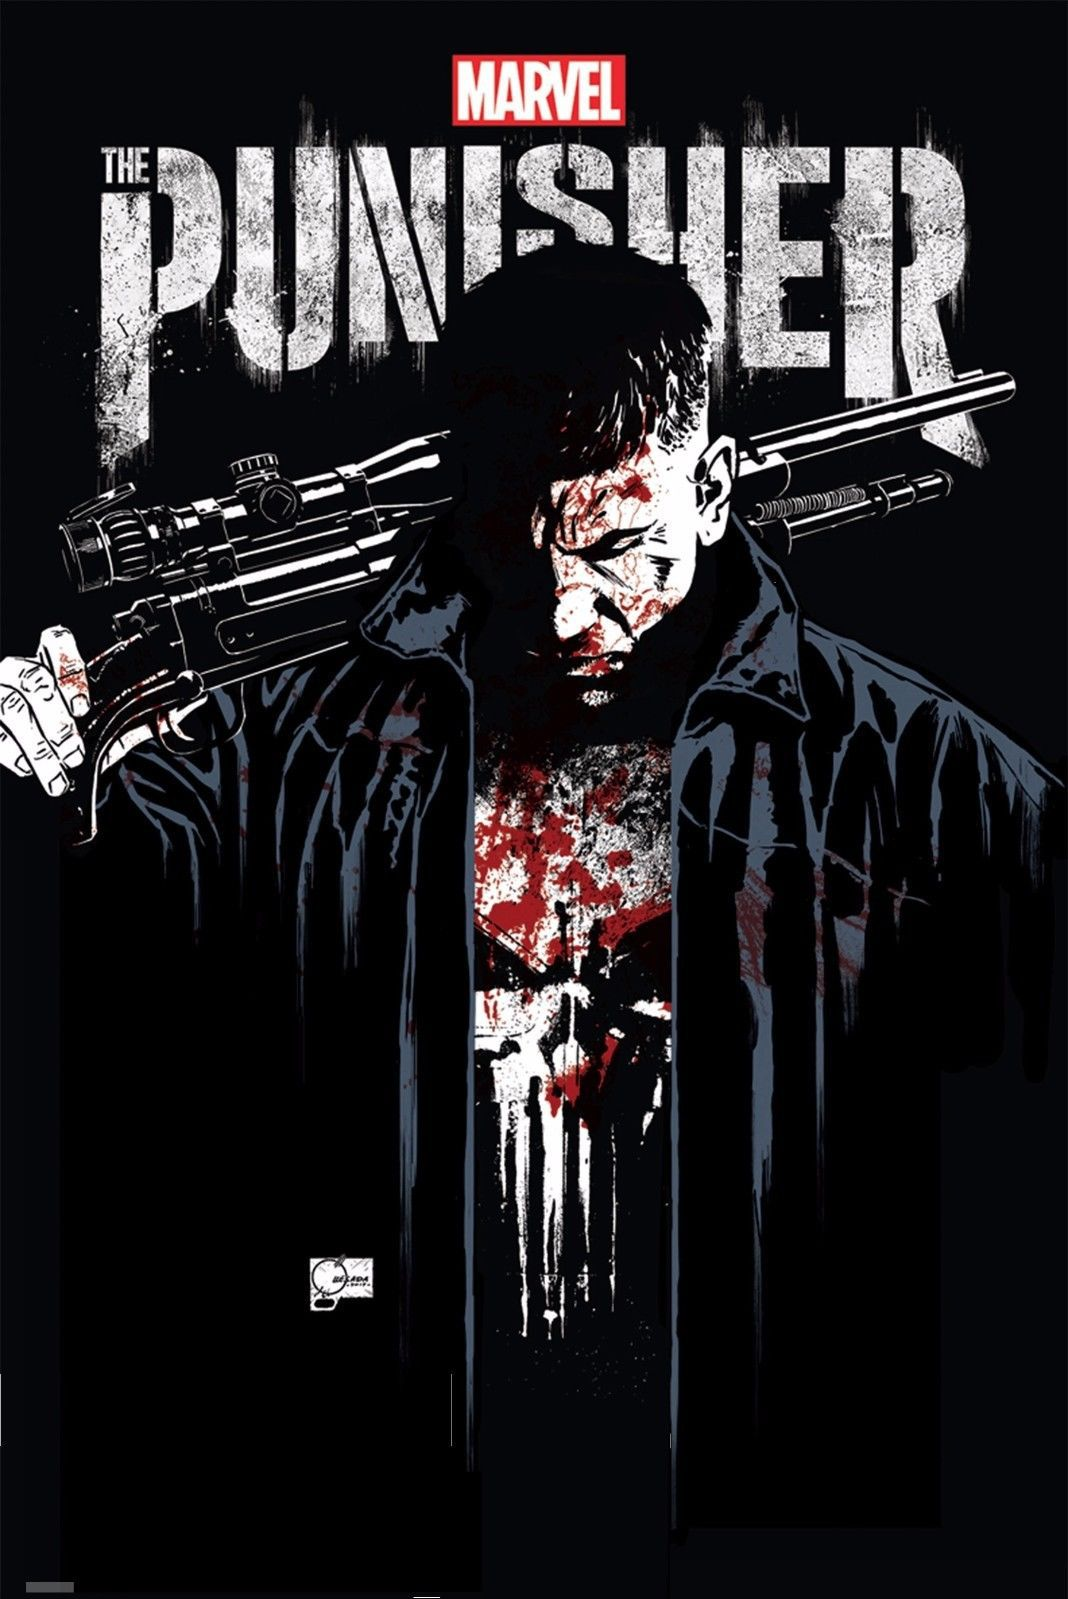 Marvel's The Punisher - Série (2017)